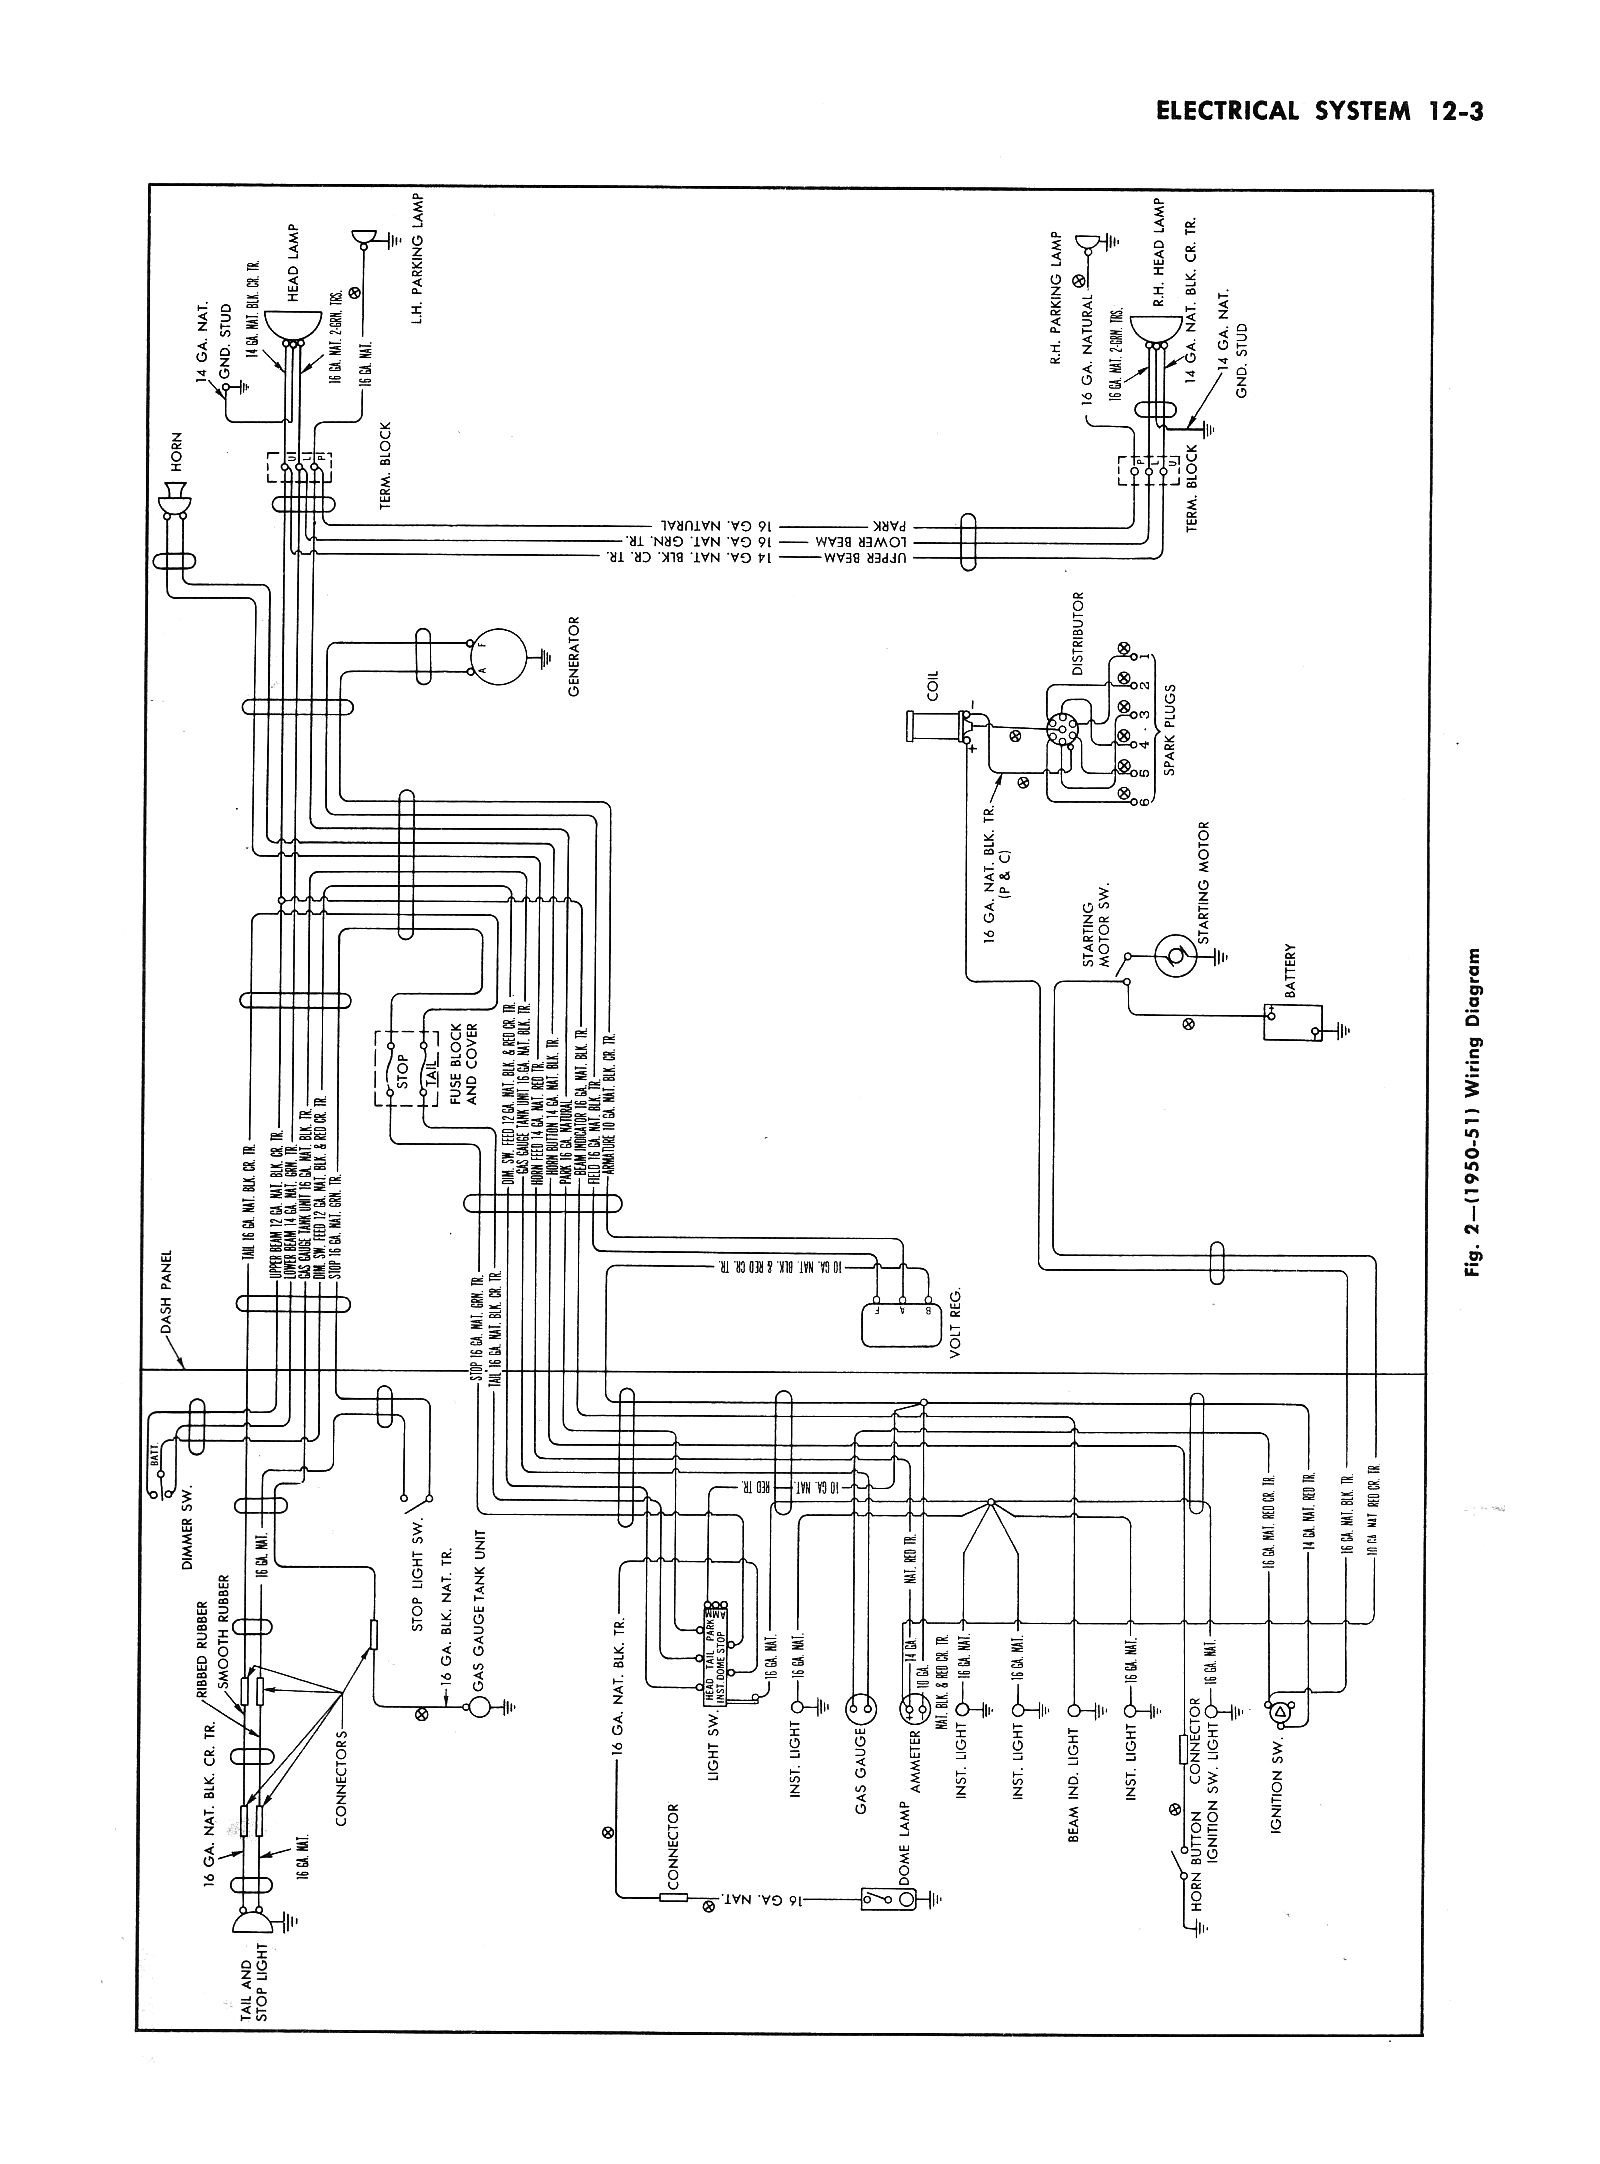 Chevy Wiring Diagrams. 1950 Truck Wiring. Chevrolet. Wire Schematic For Chevy Tail Lights At Scoala.co